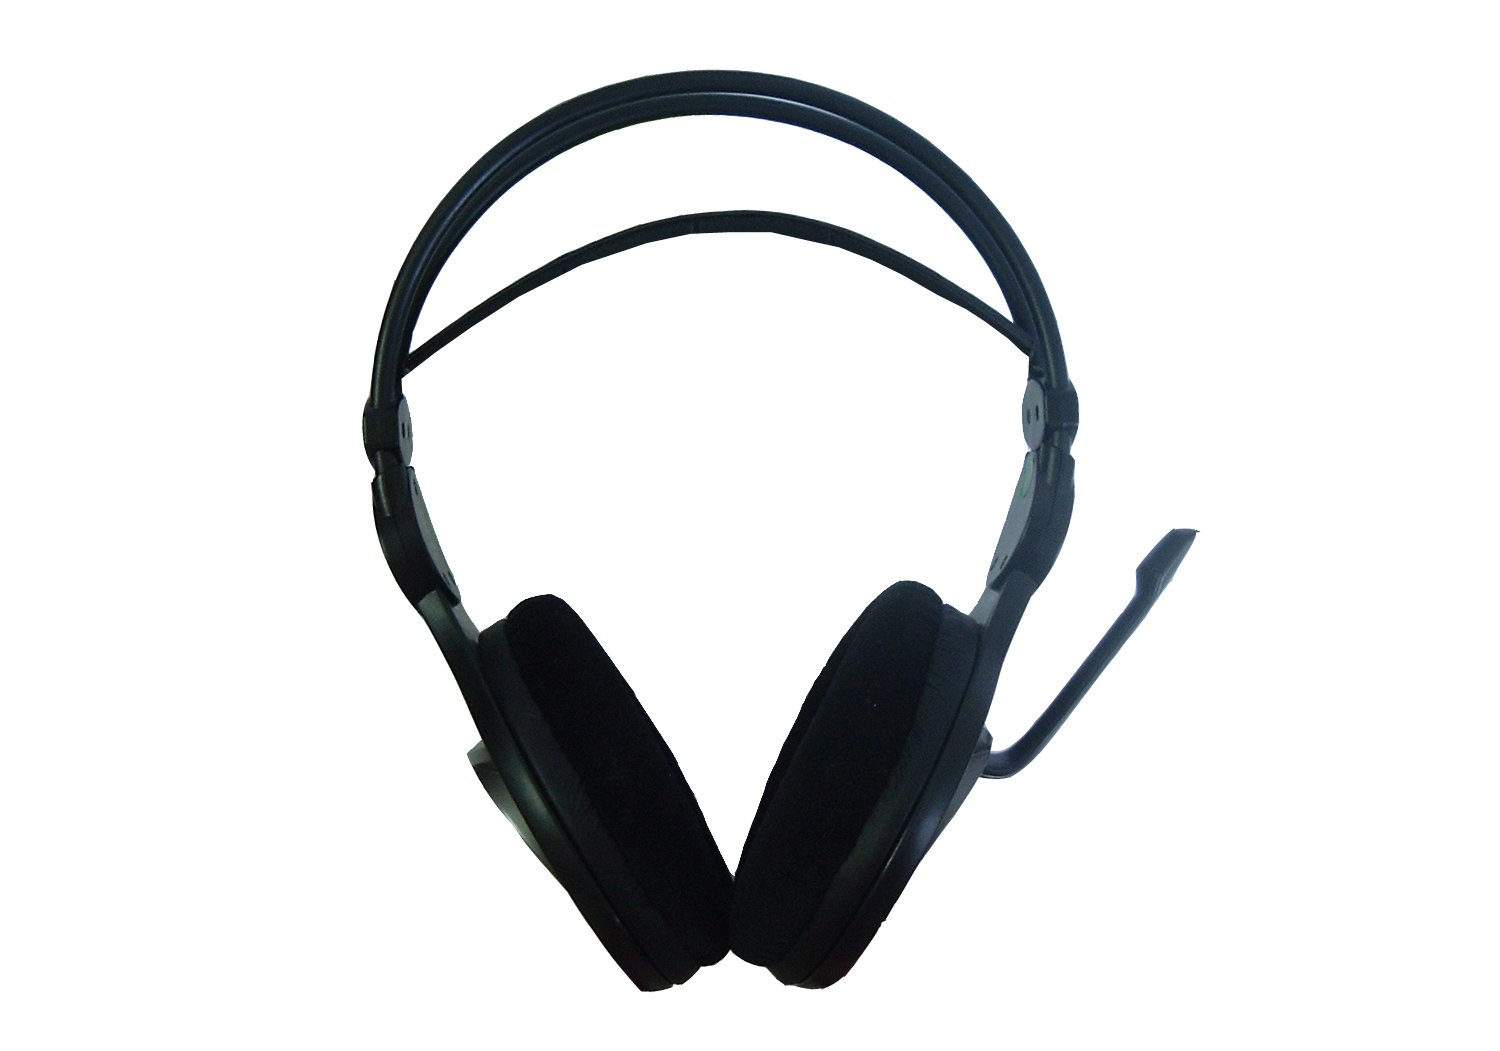 f3983a2397a Amazon.com: A4tech HS-100 Stereo Gaming Headset Office Headphone with Aux  Mic Split: Computers & Accessories